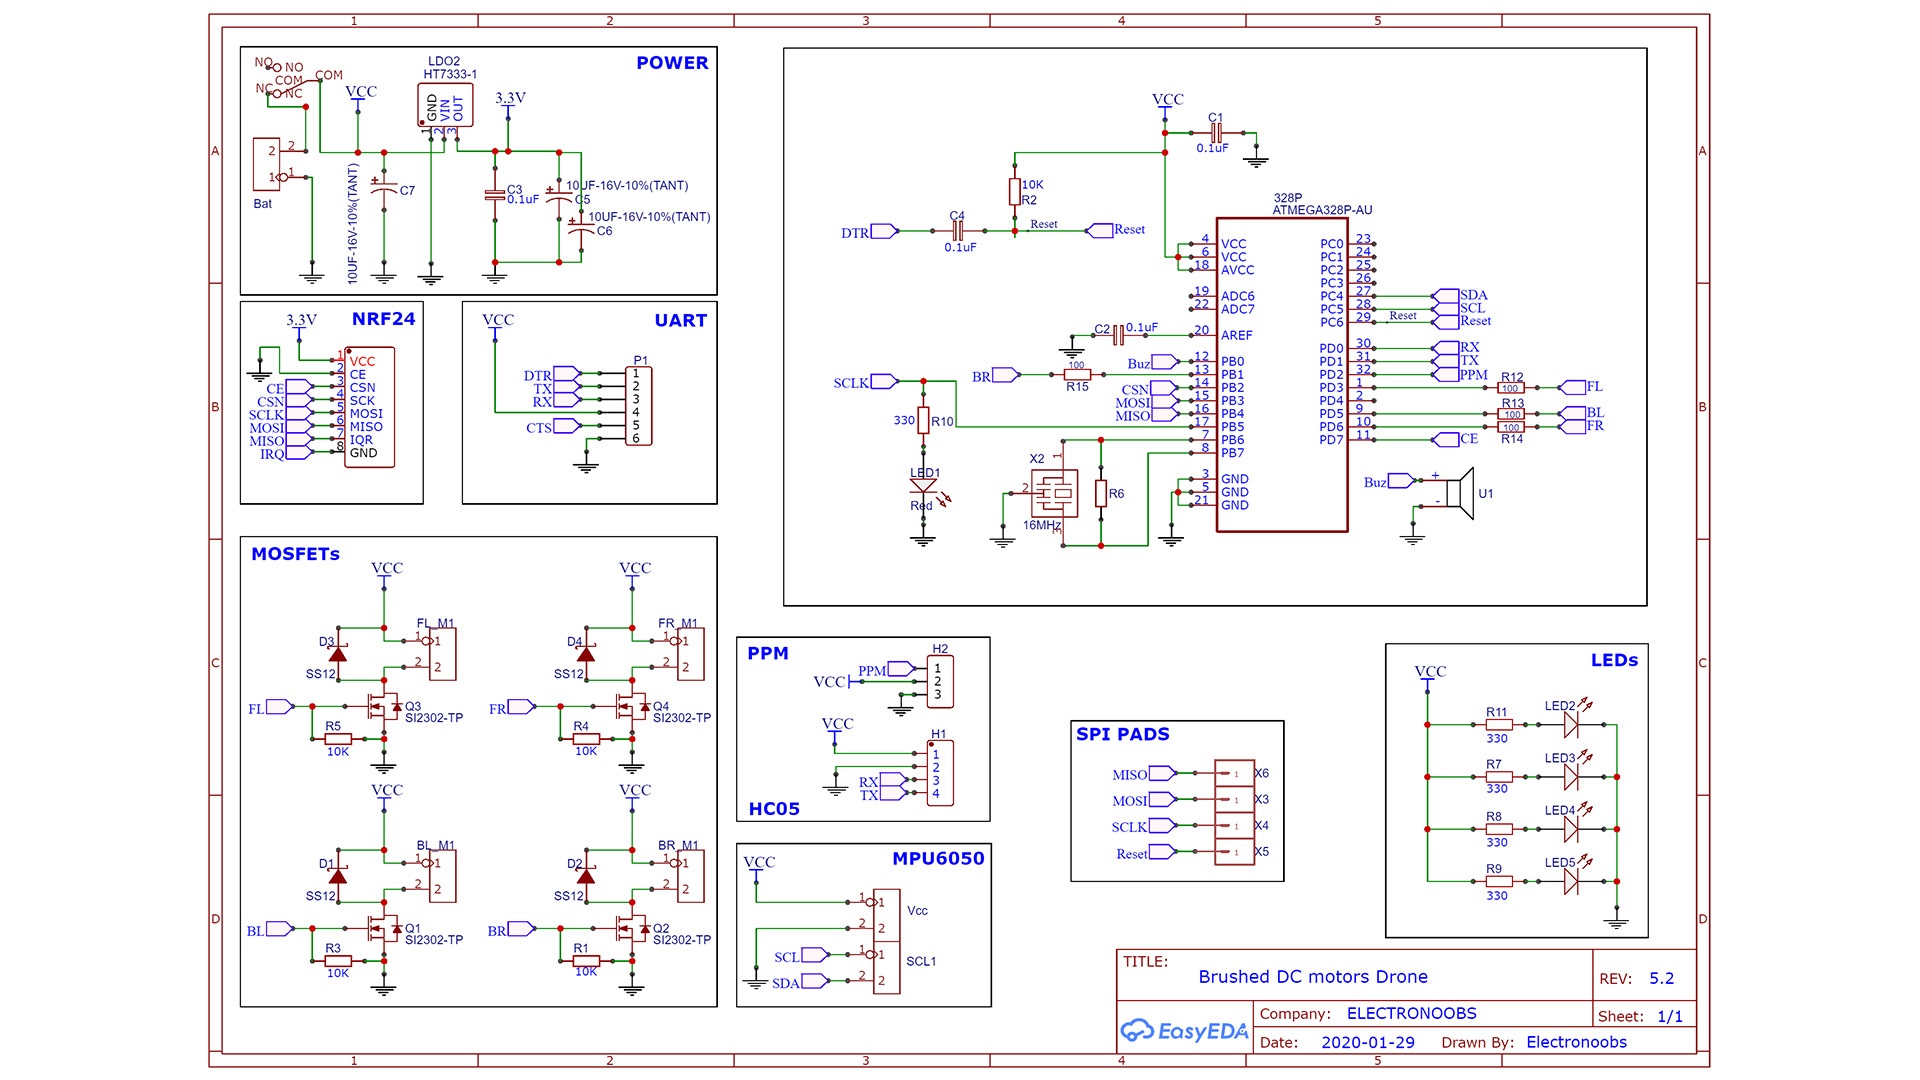 Arduino schematic brushed drone PCB